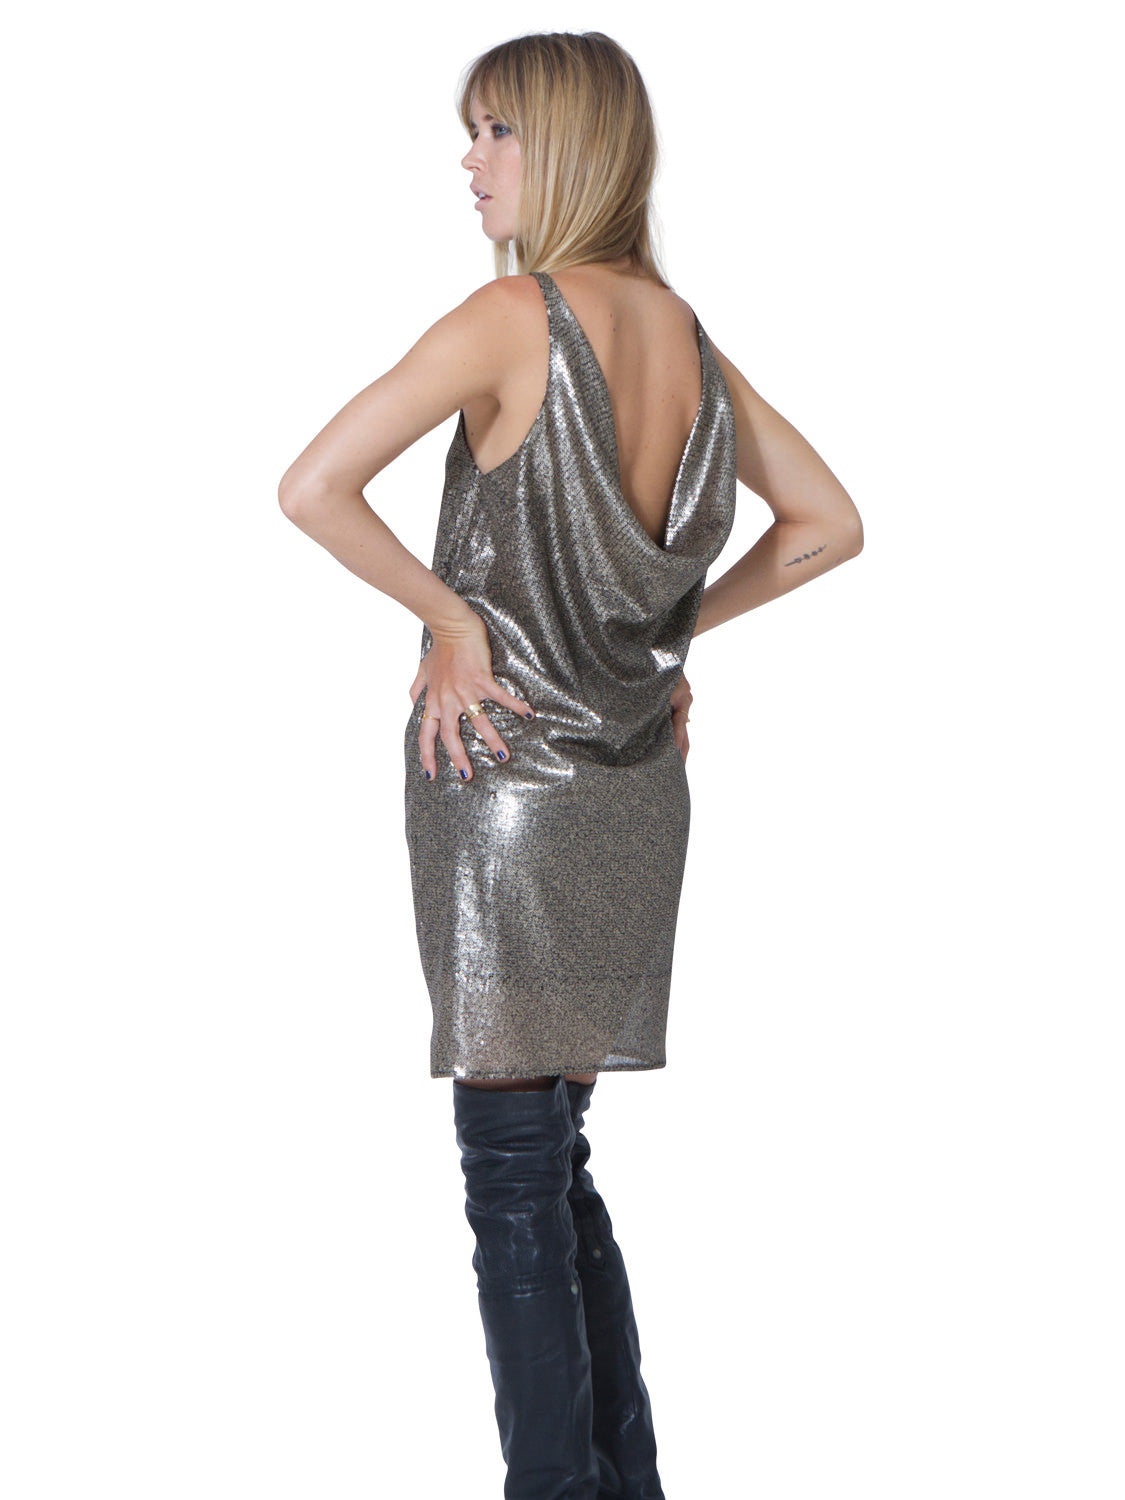 CLOSE TO HEAVEN SEQUIN DRESS - Little Joe Woman by Gail Elliott E-Boutique  - 3